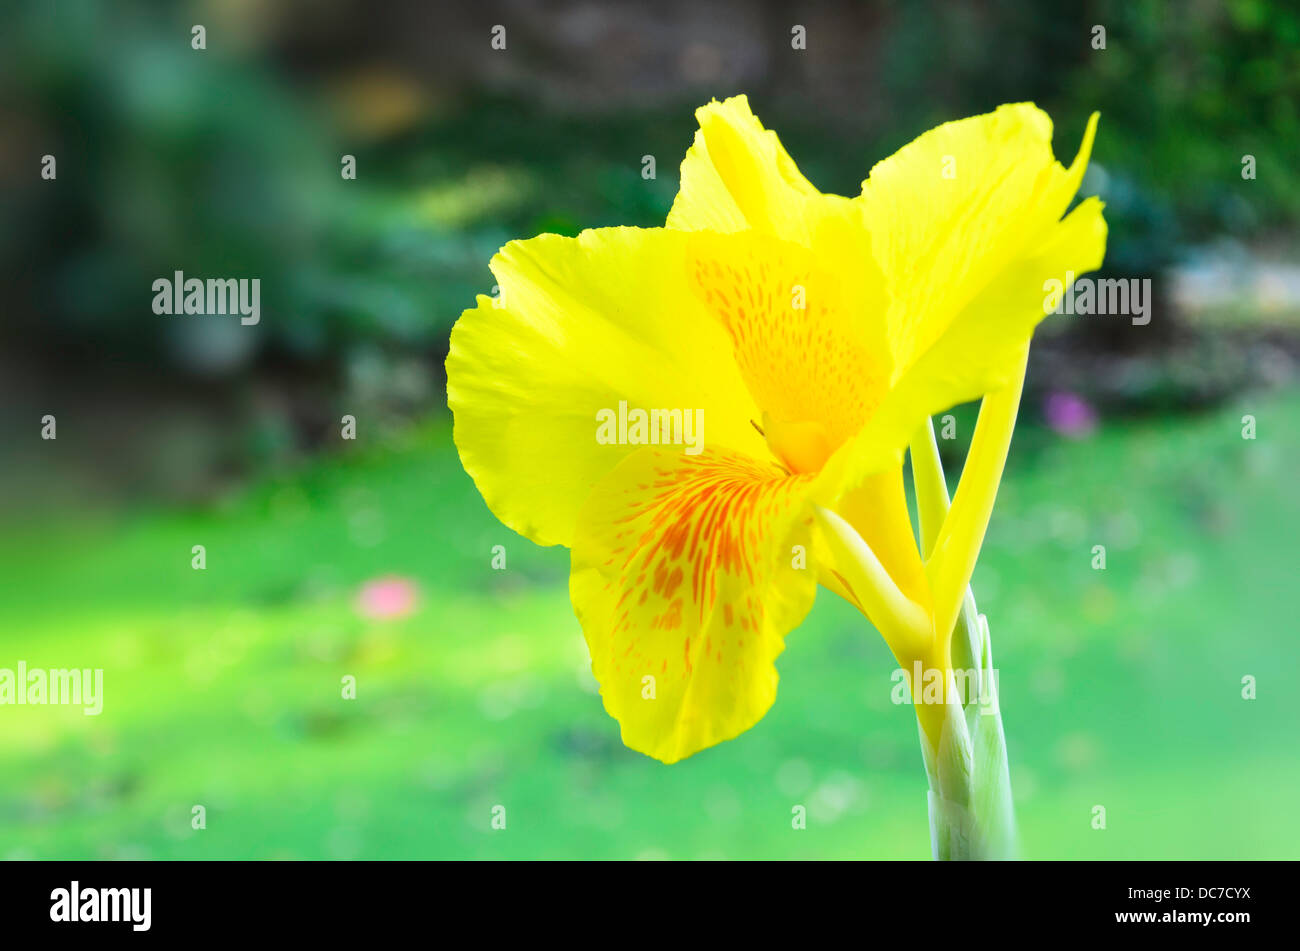 Canna flower stock photos canna flower stock images alamy the yellow canna flower in the garden stock image mightylinksfo